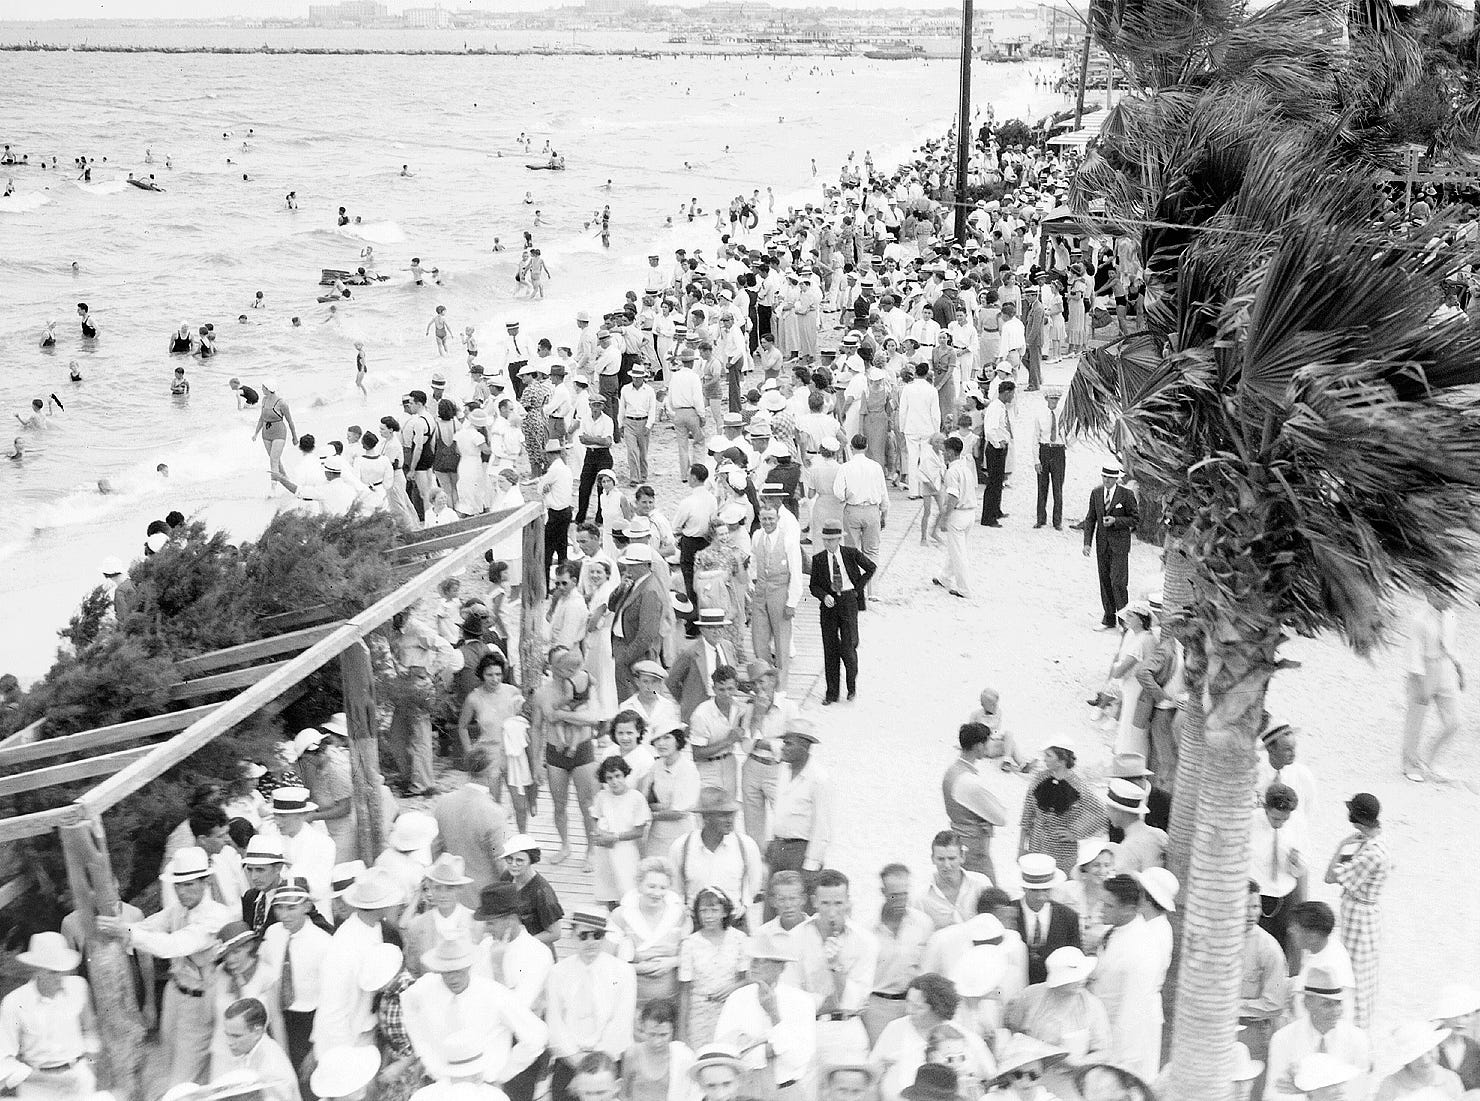 Corpus Christi's North Beach in 1935, when large crowds of bathers and strollers were attracted to the area in the summertime. The area shown was a choice bathing spot.